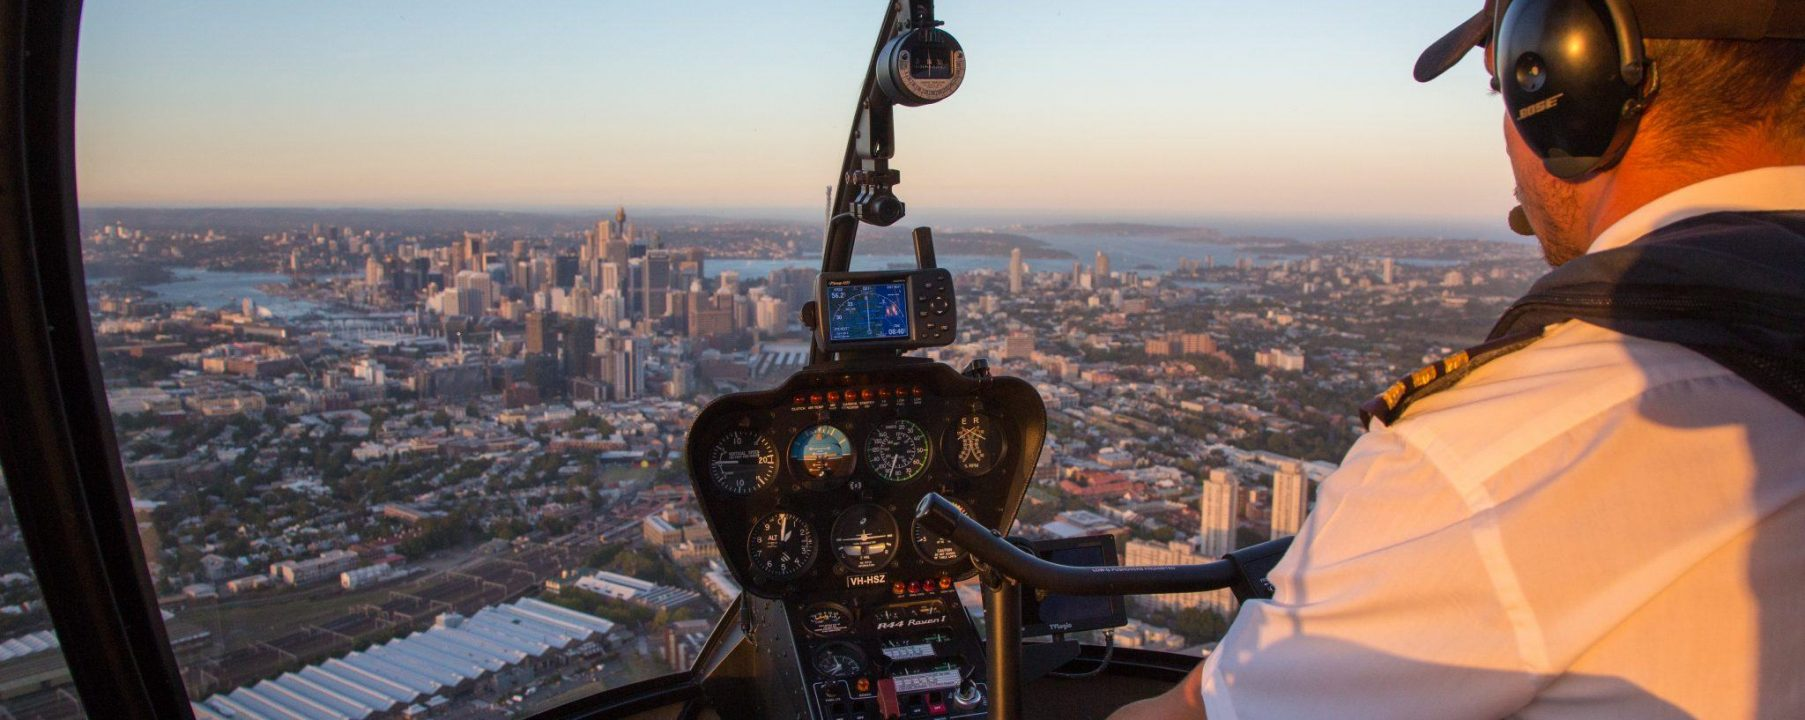 Sydney Aerial Photo Helicopter Filming